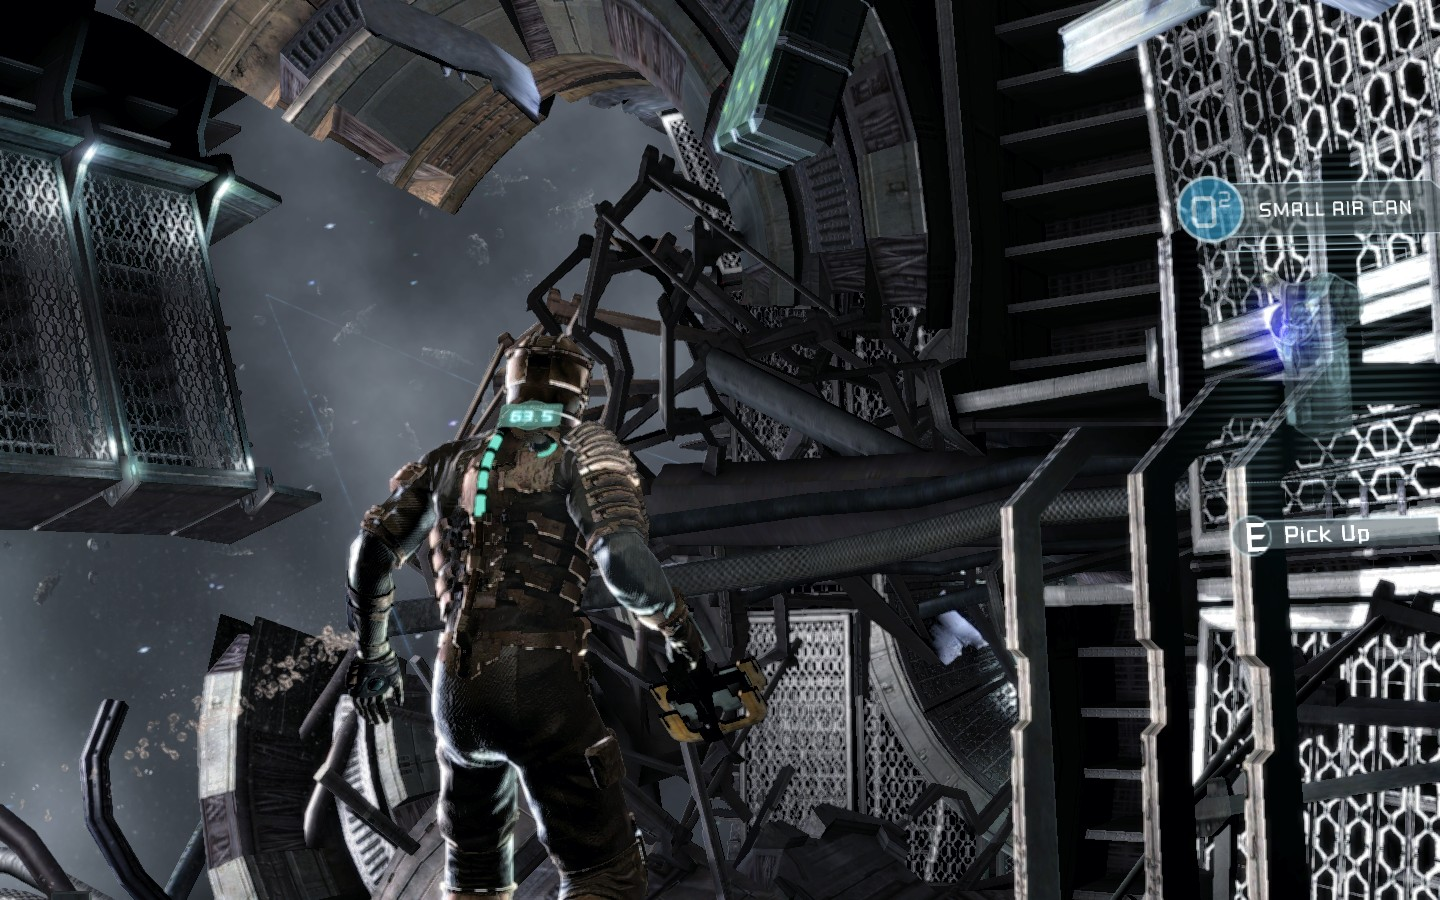 how to i use zero g jump in dead space